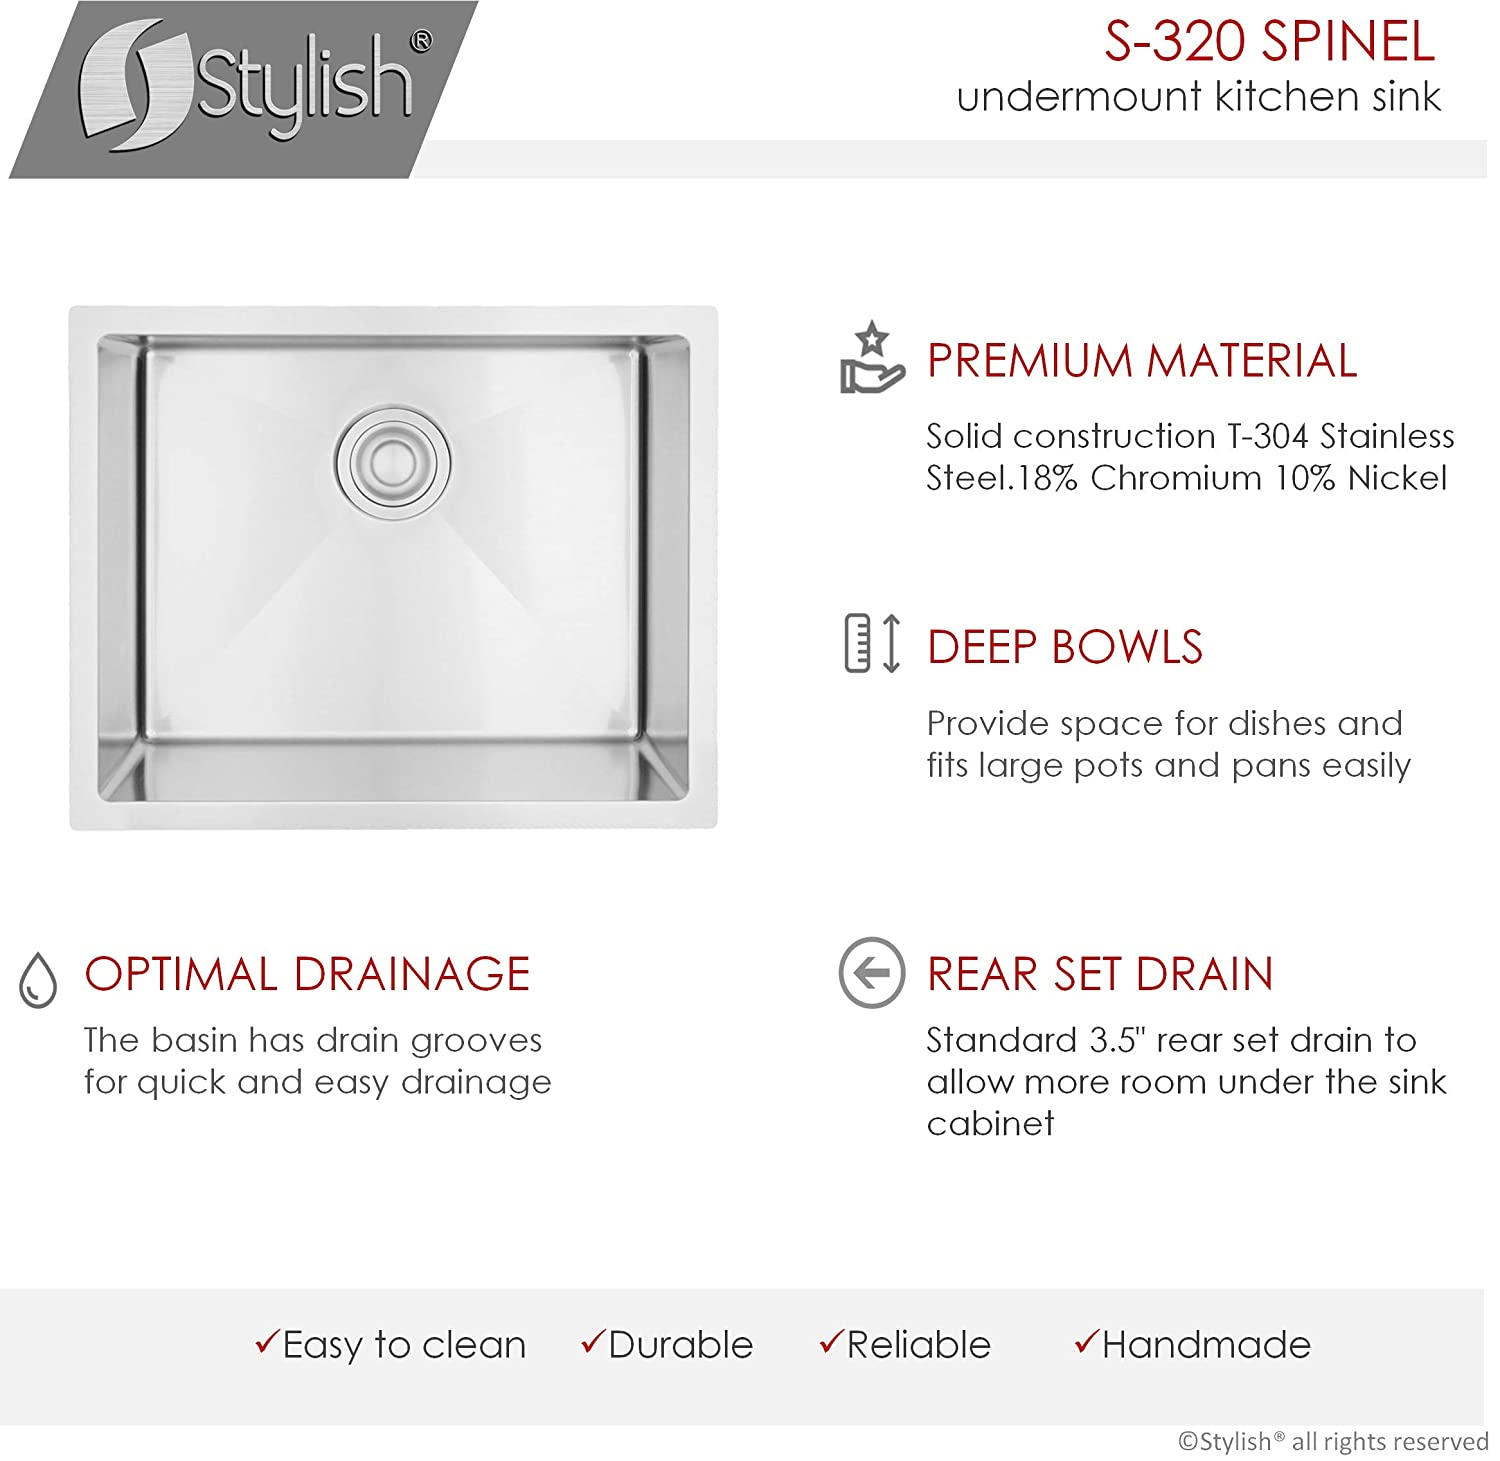 Dualmount 22 Inch Drop-in or Undermount Single Bowl Laundry Sink by Stylish 10mm Radius Corners 18 Gauge Stainless Steel Premium Strainer S-320T